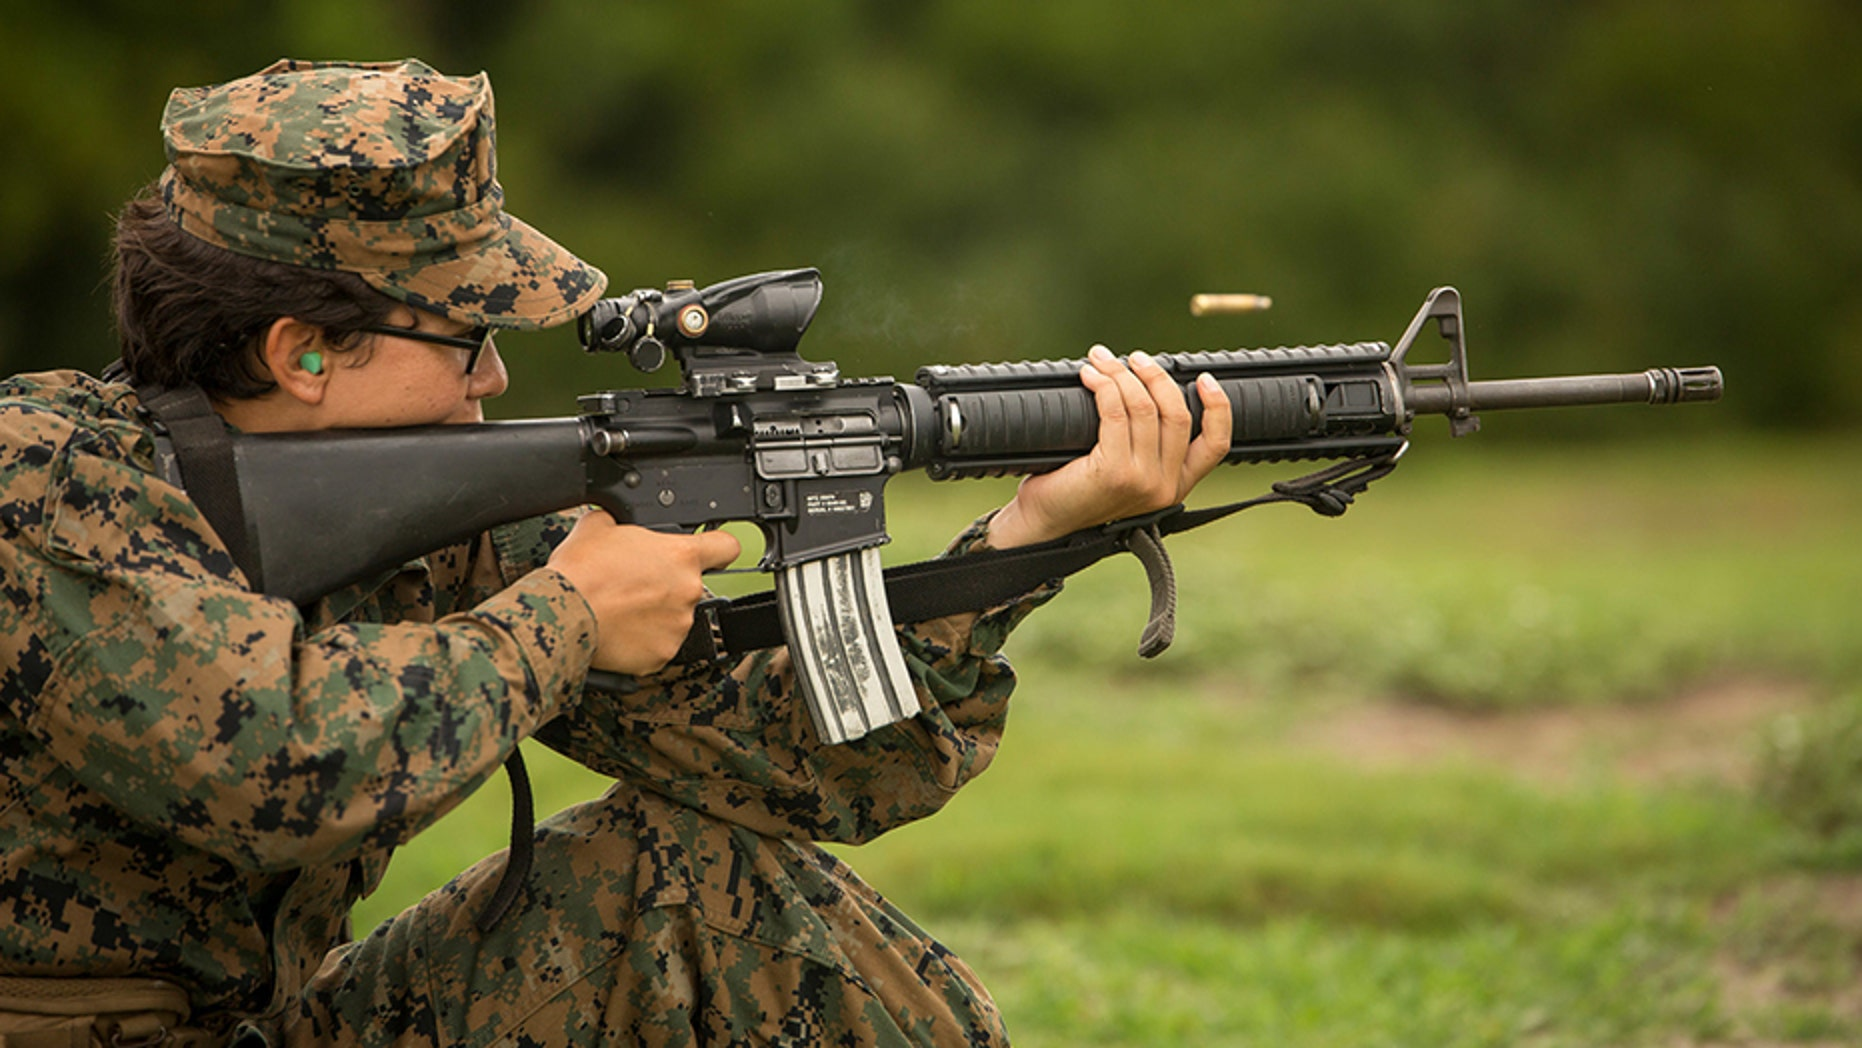 The Marines let women join a previously male-only combat training course in California.